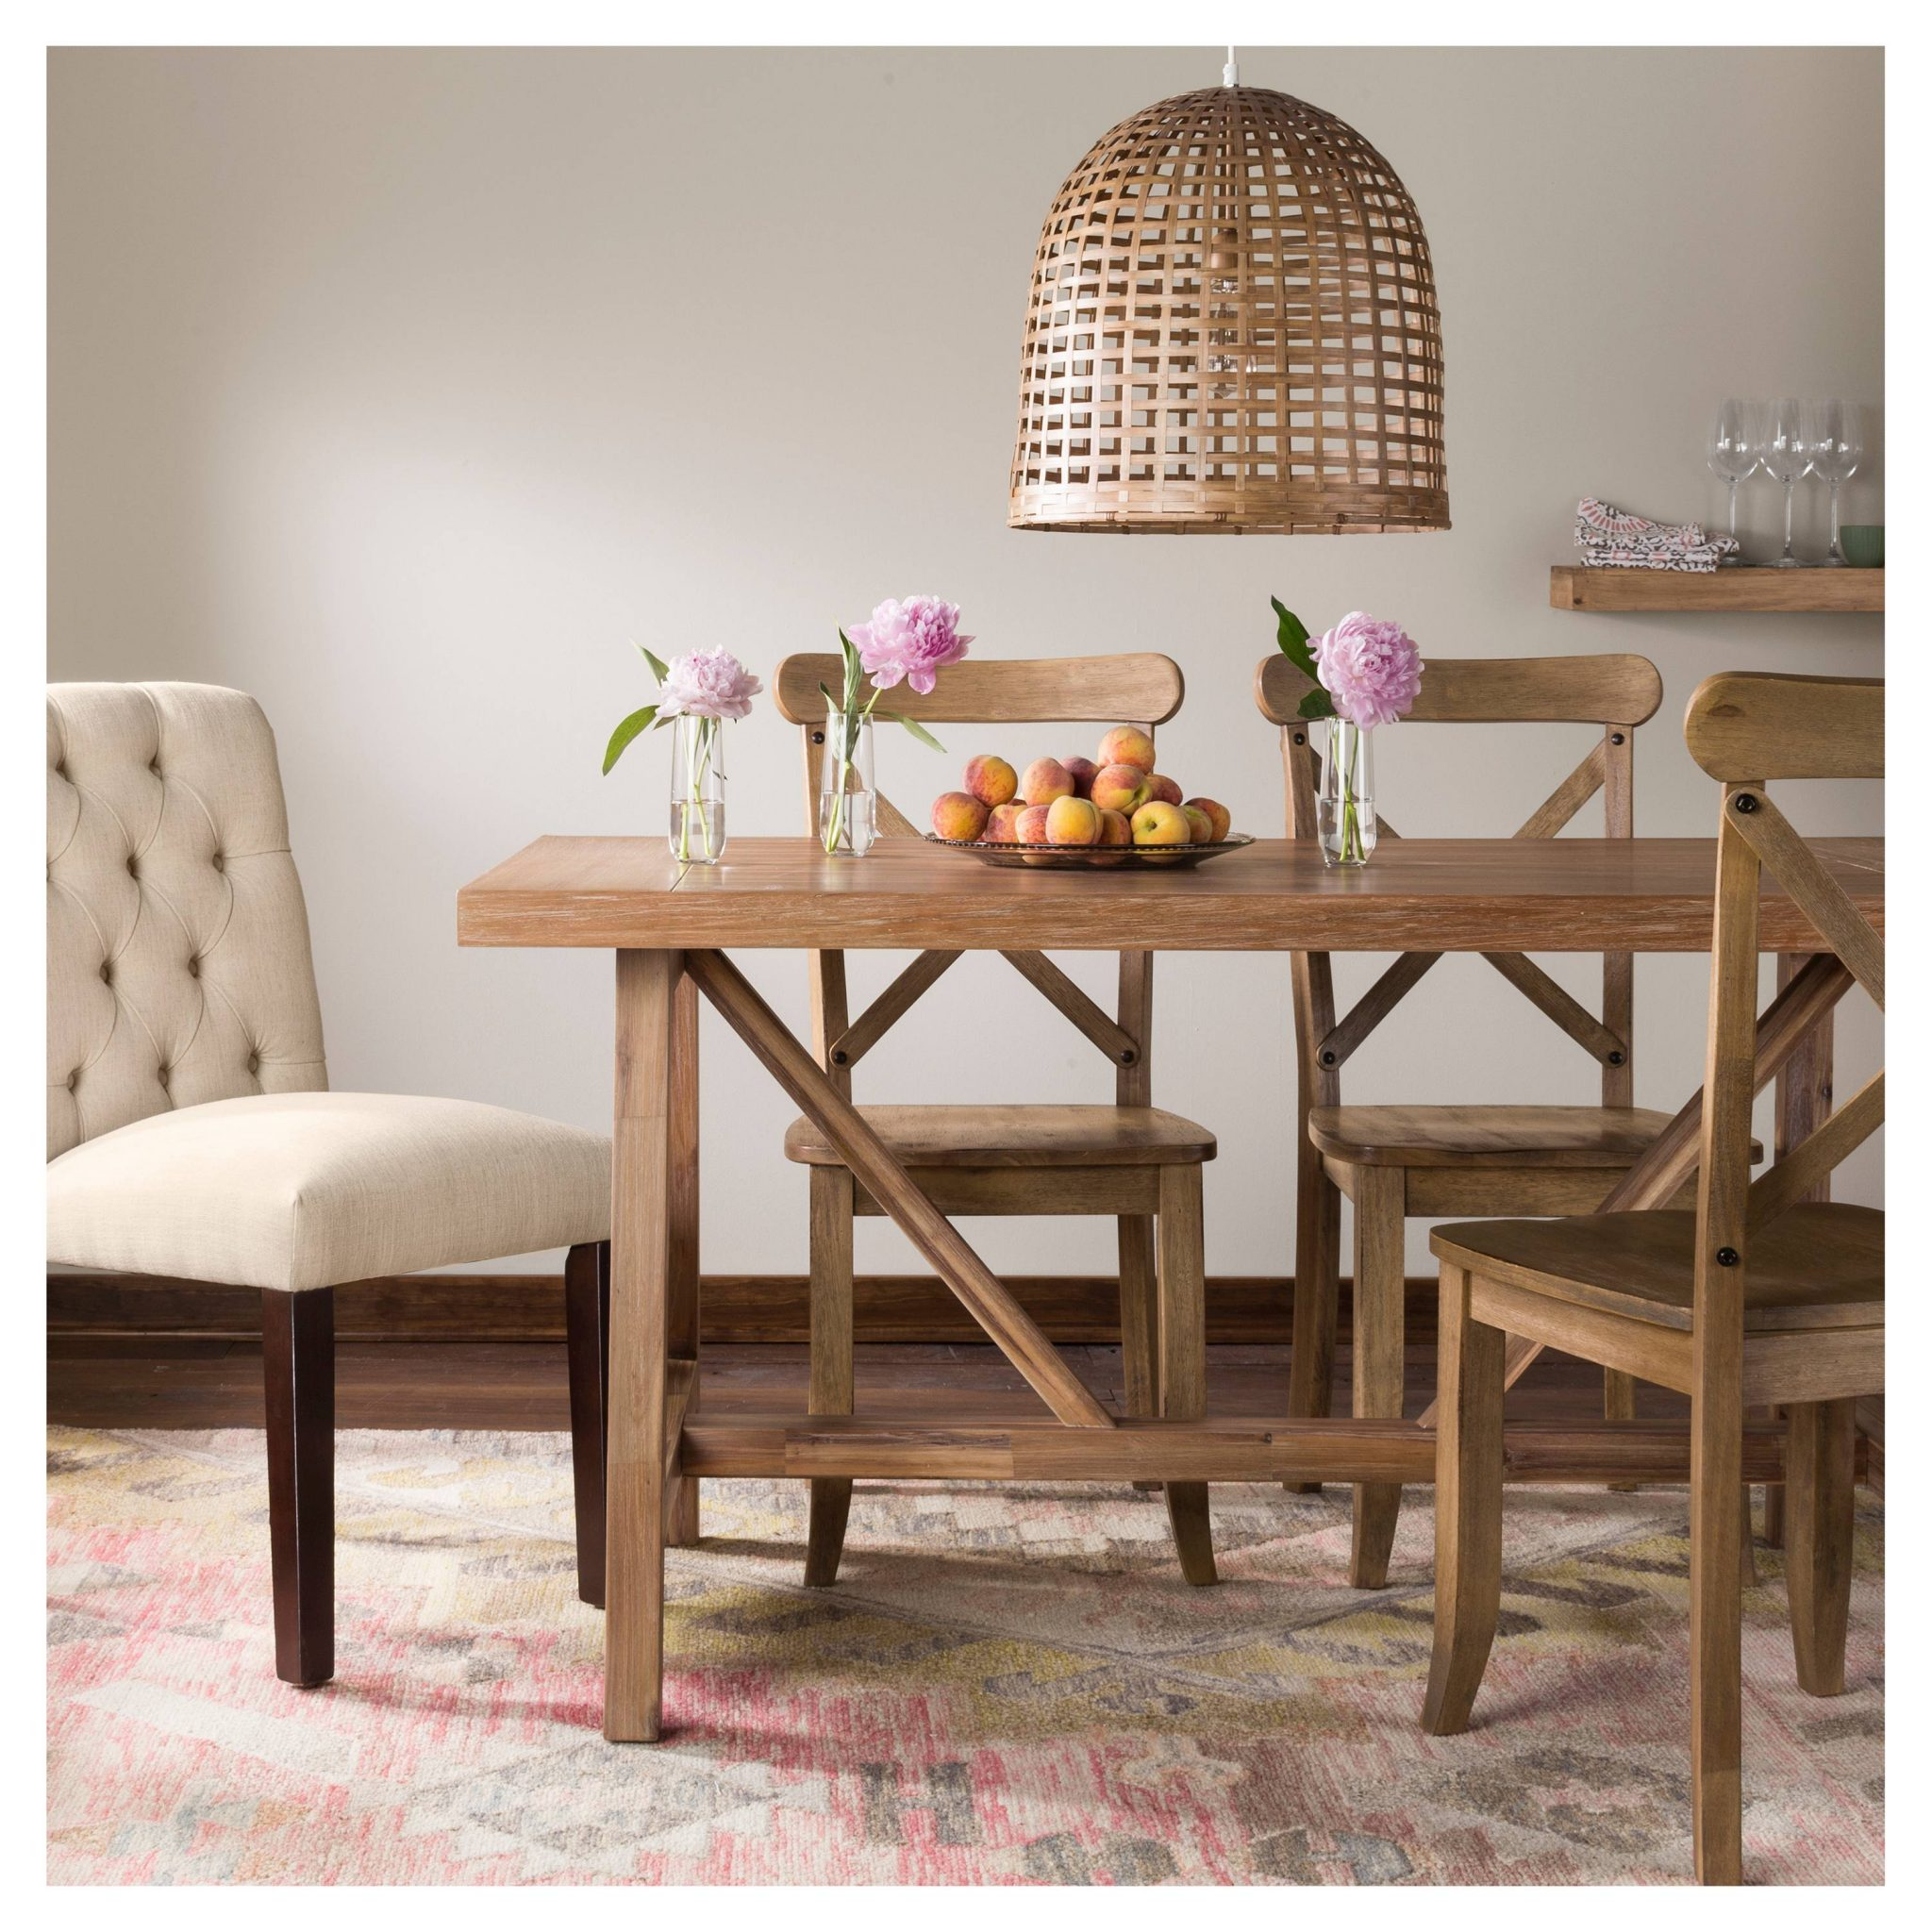 l o w retail price 300 table 800 8 chairs - Low Dining Room Table